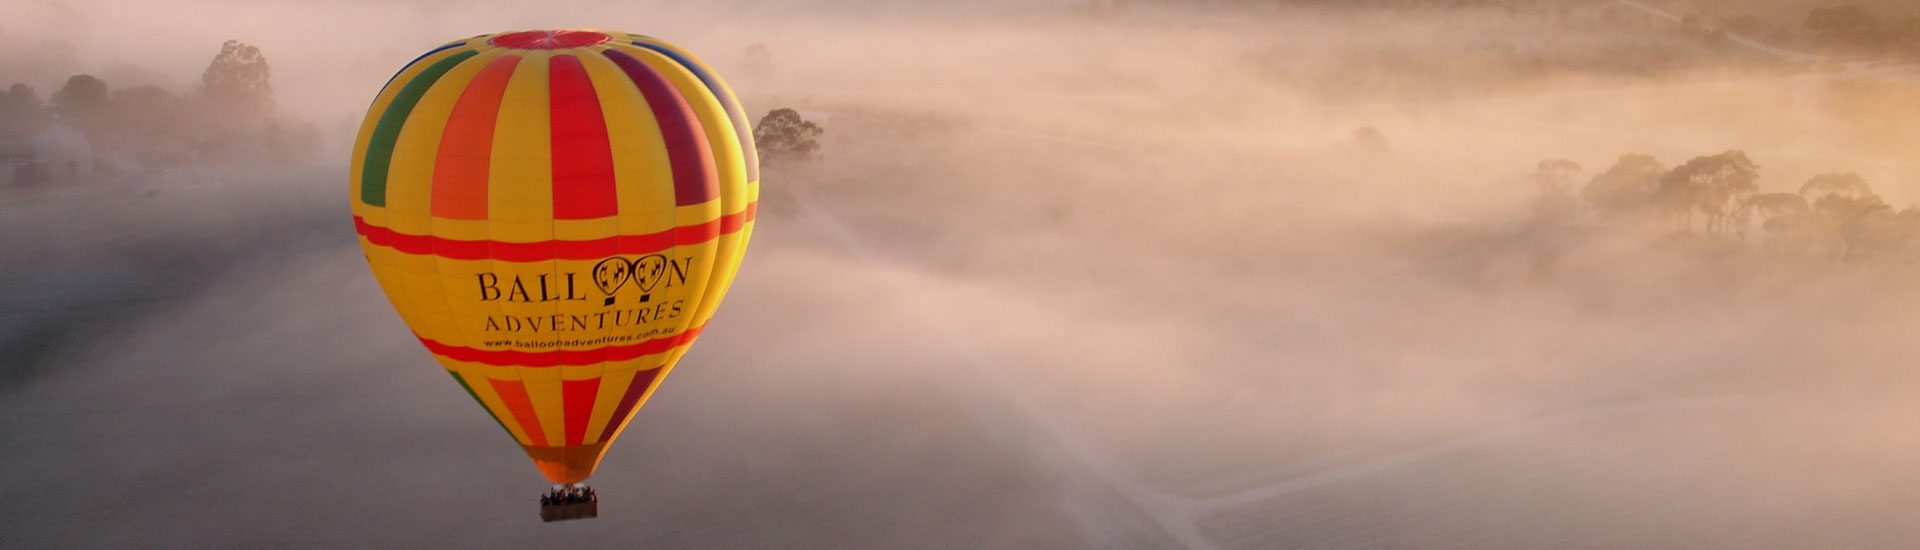 balloon-adventures-barossa-valley-hot-air-balloon-flights-b1